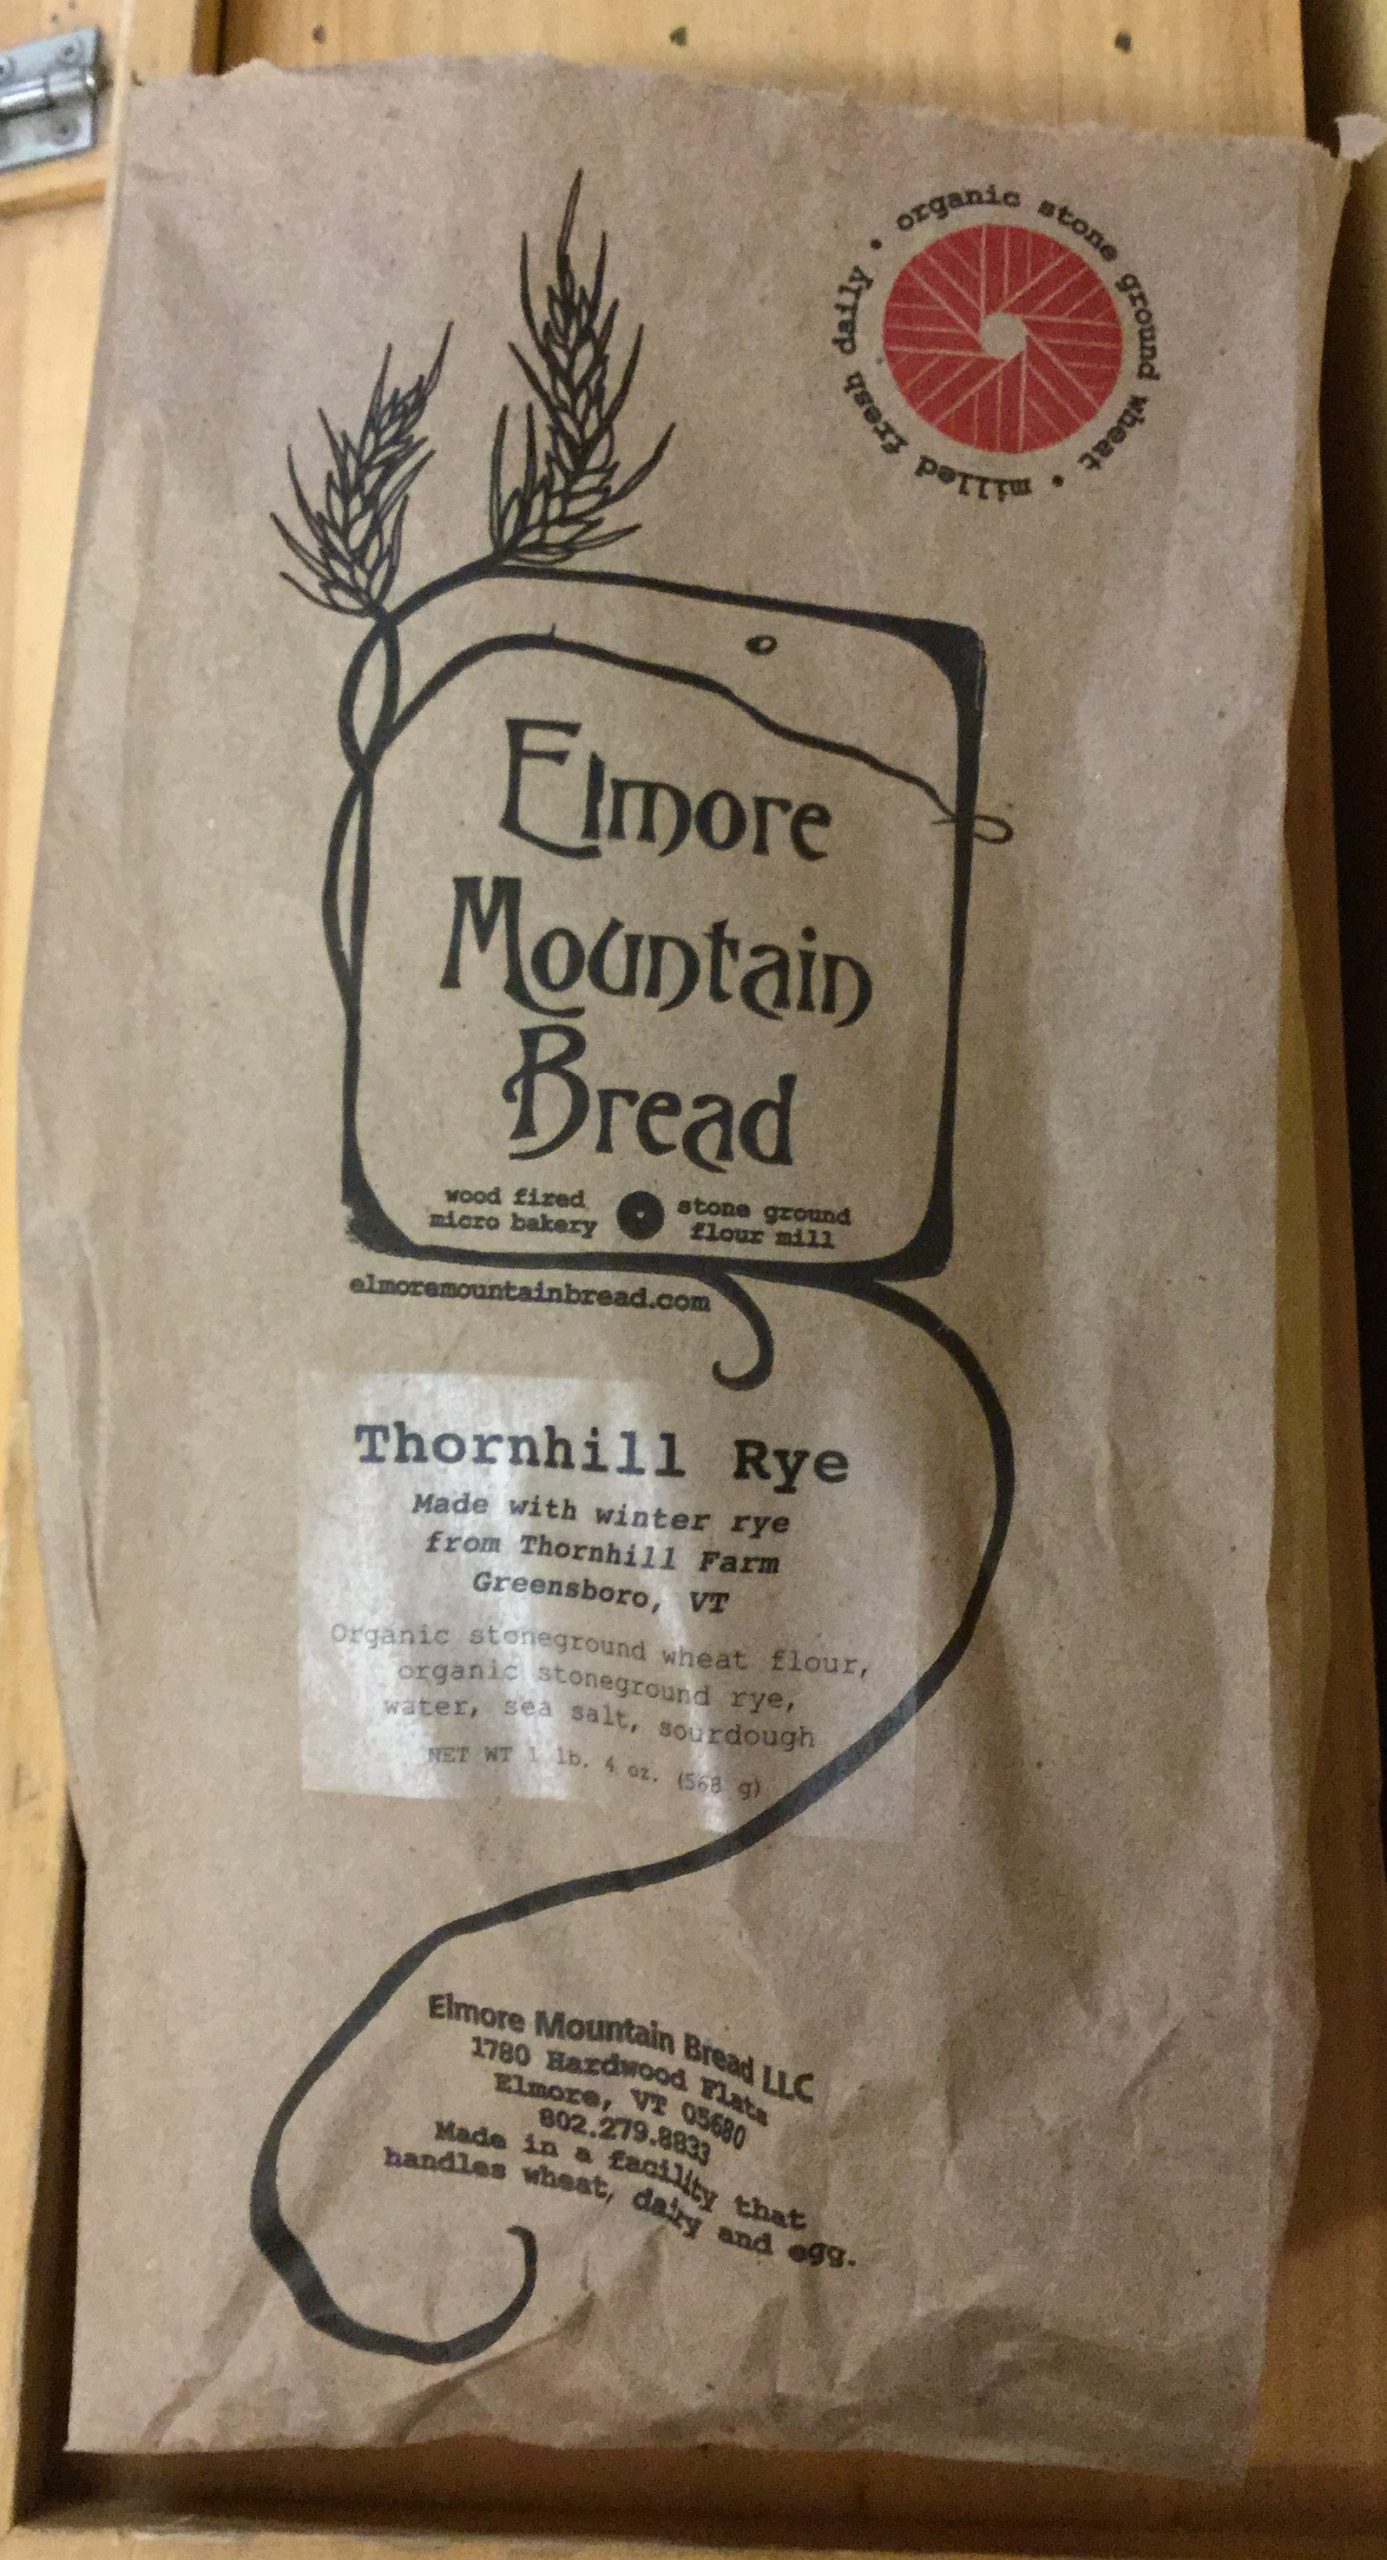 Elmore Mountain Bread